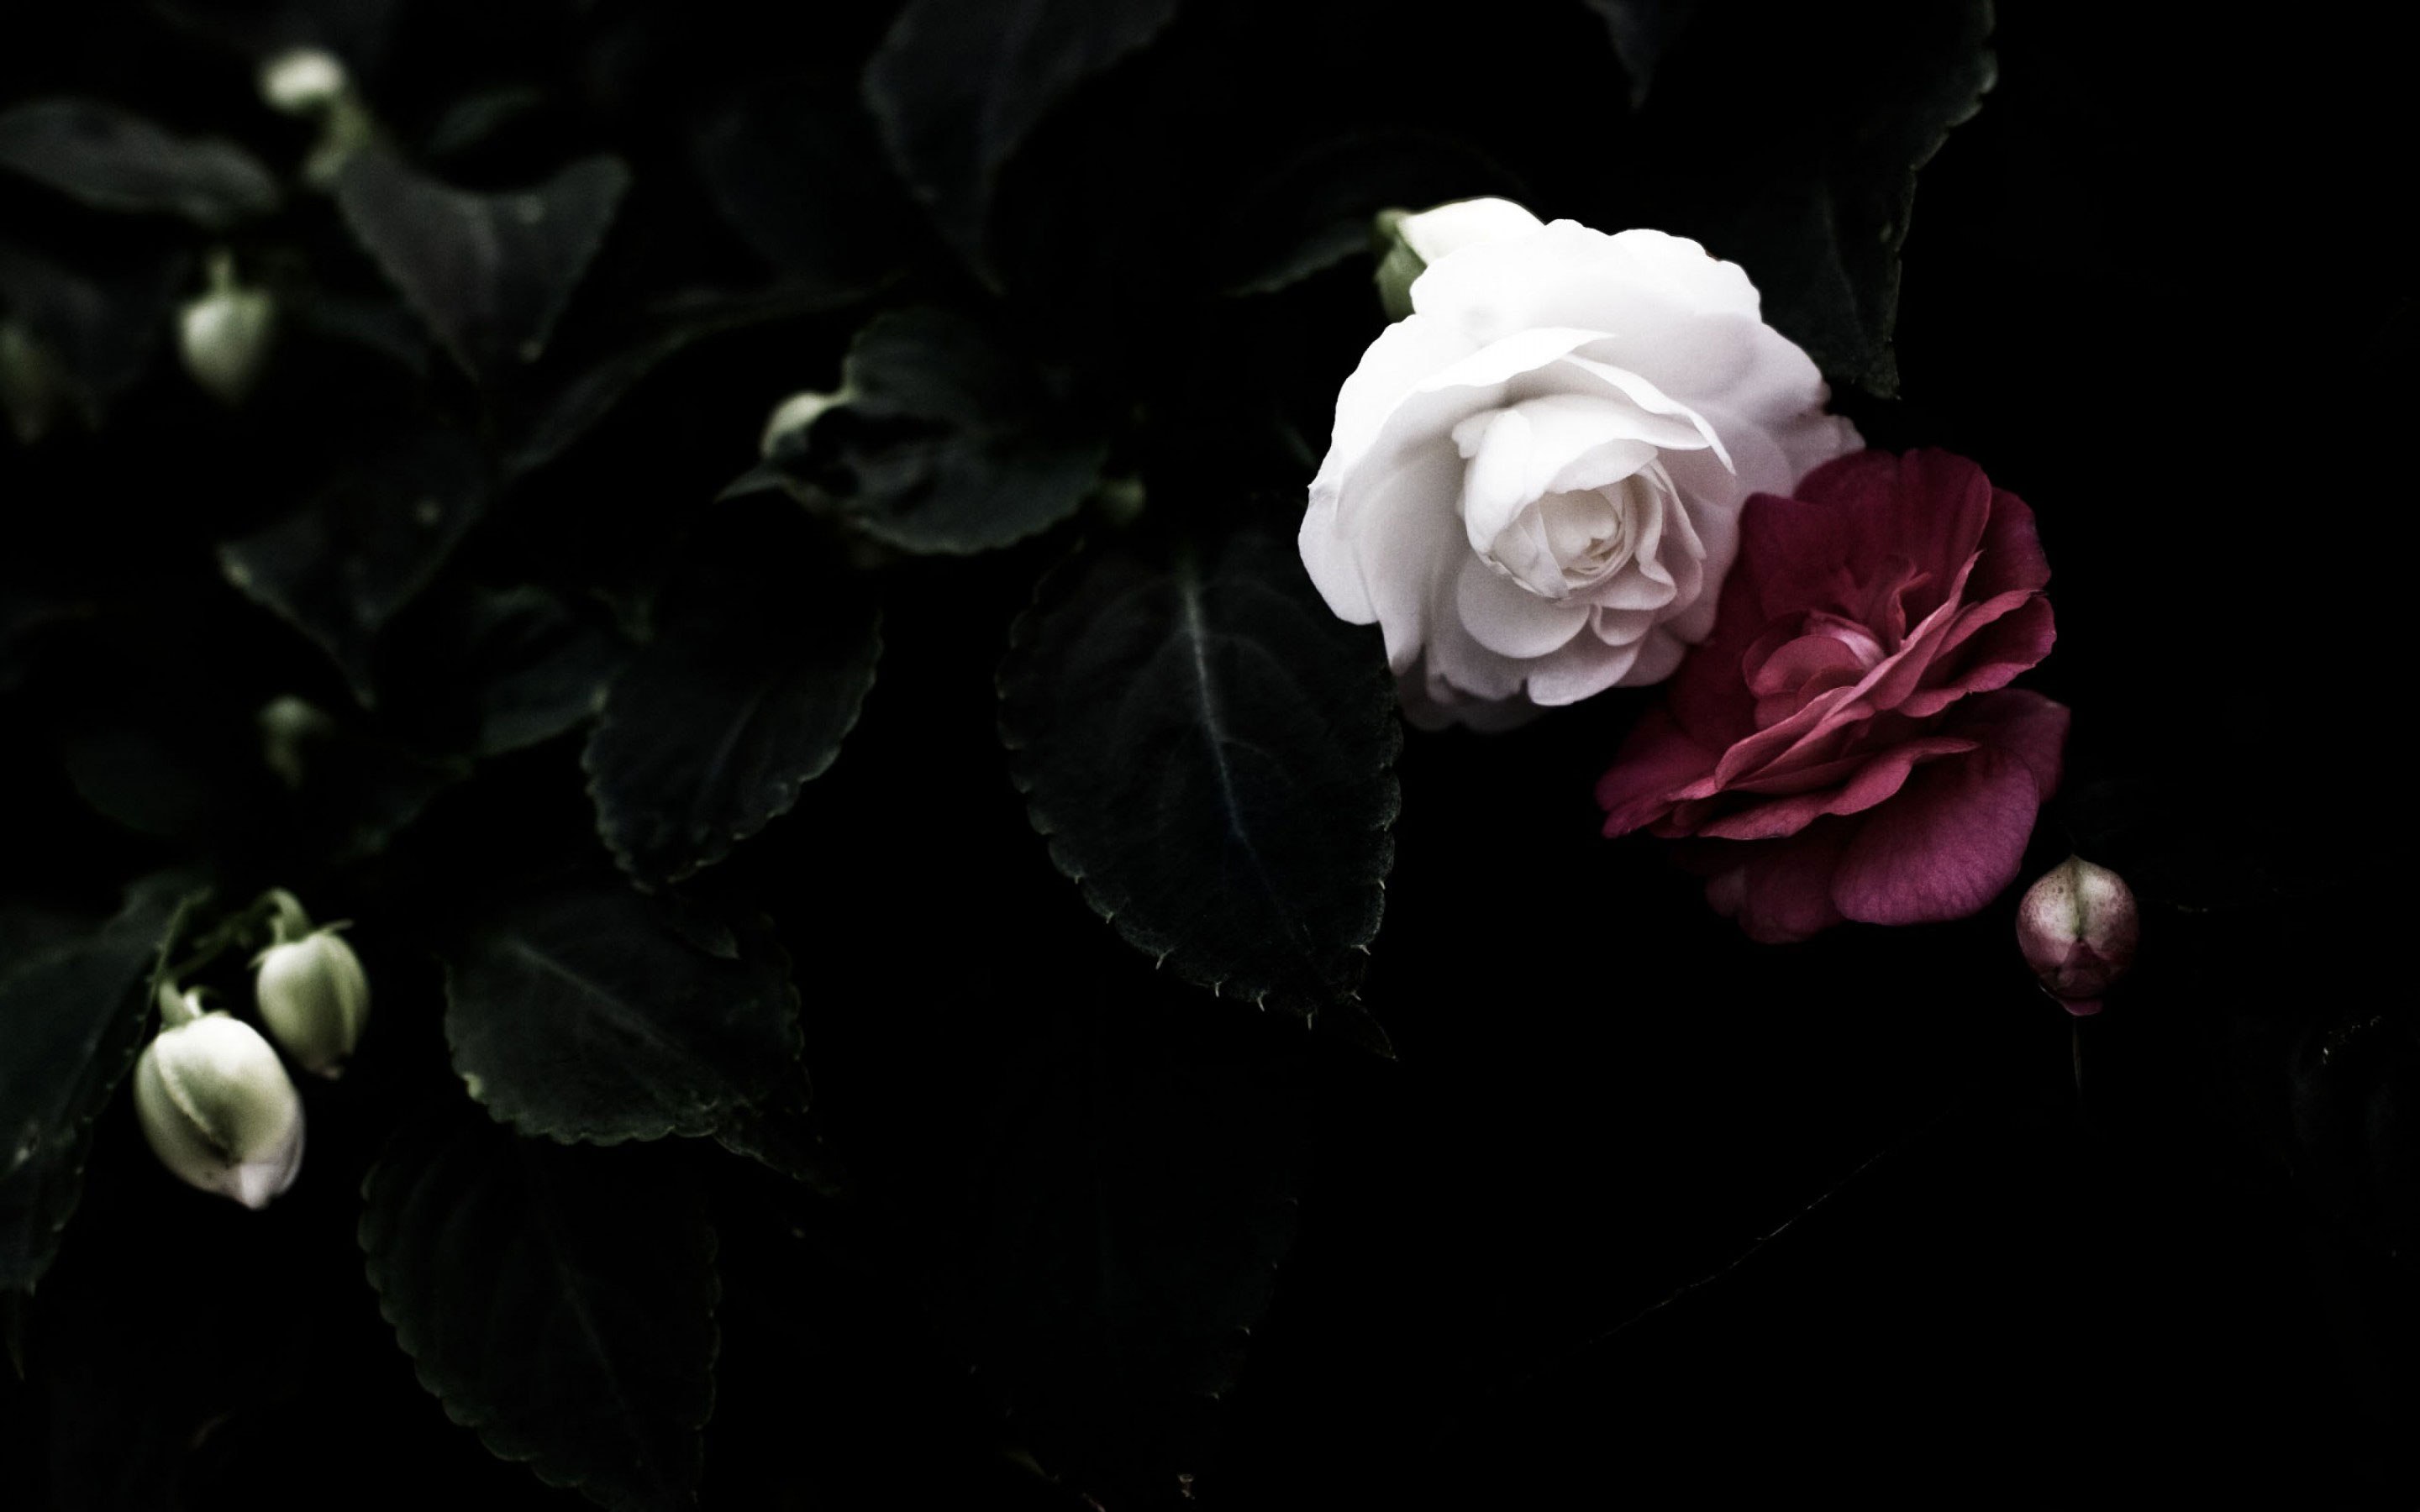 Looking for white aesthetic gifs? Black Rose Wallpapers High Quality | Download Free